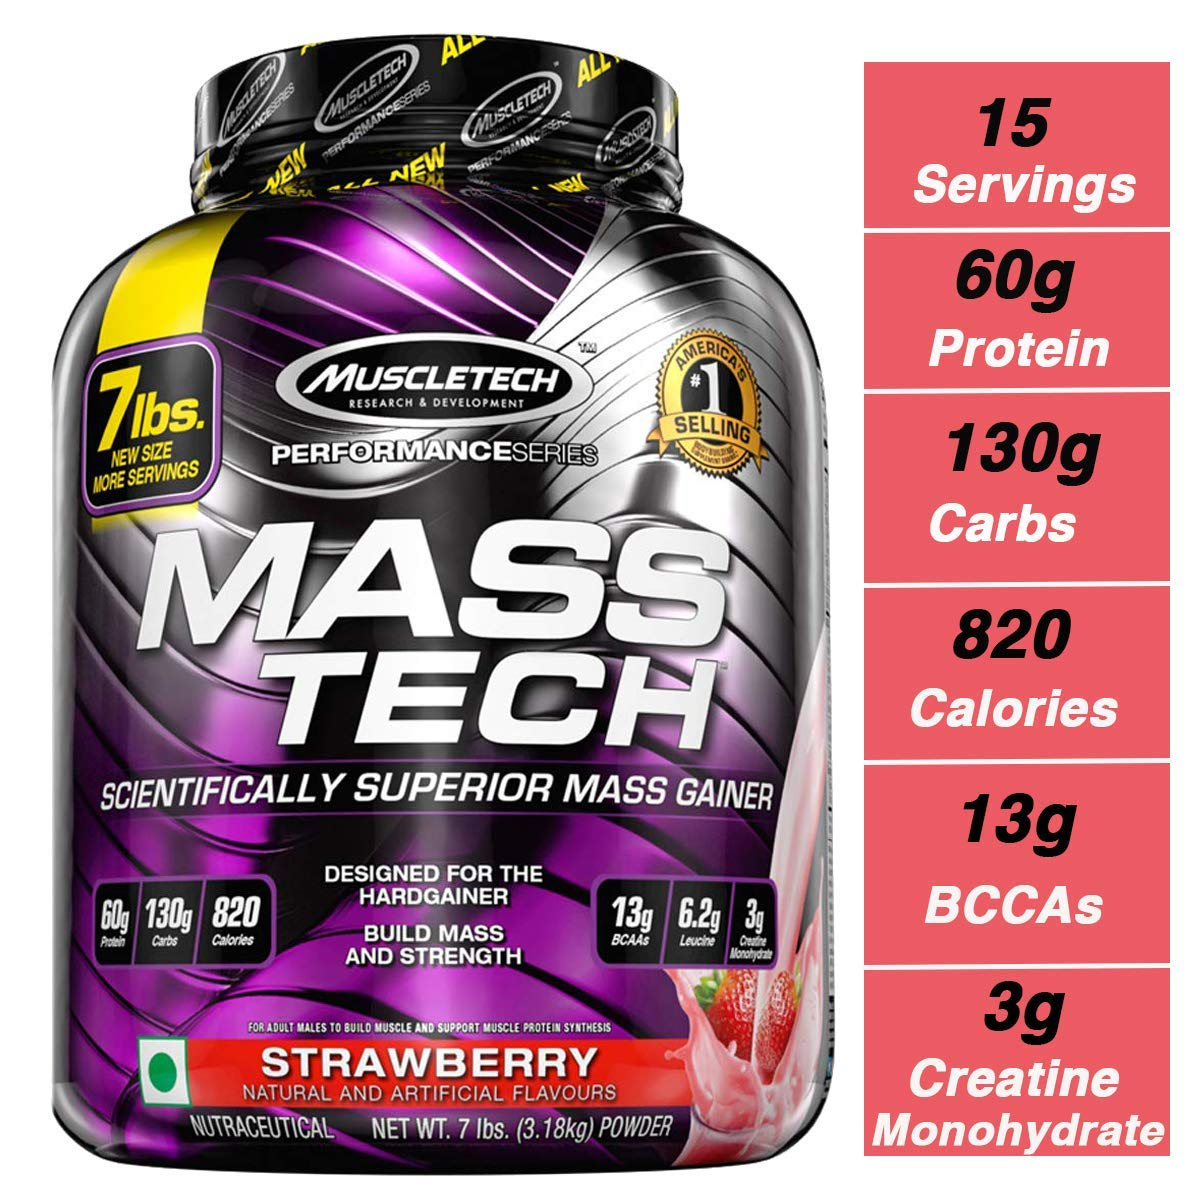 MuscleTech Mass Tech Mass Gainer Protein Powder, Build Muscle Size & Strength with High-Density Clean Calories, Strawberry, 7lbs (3.2kg) by MuscleTech